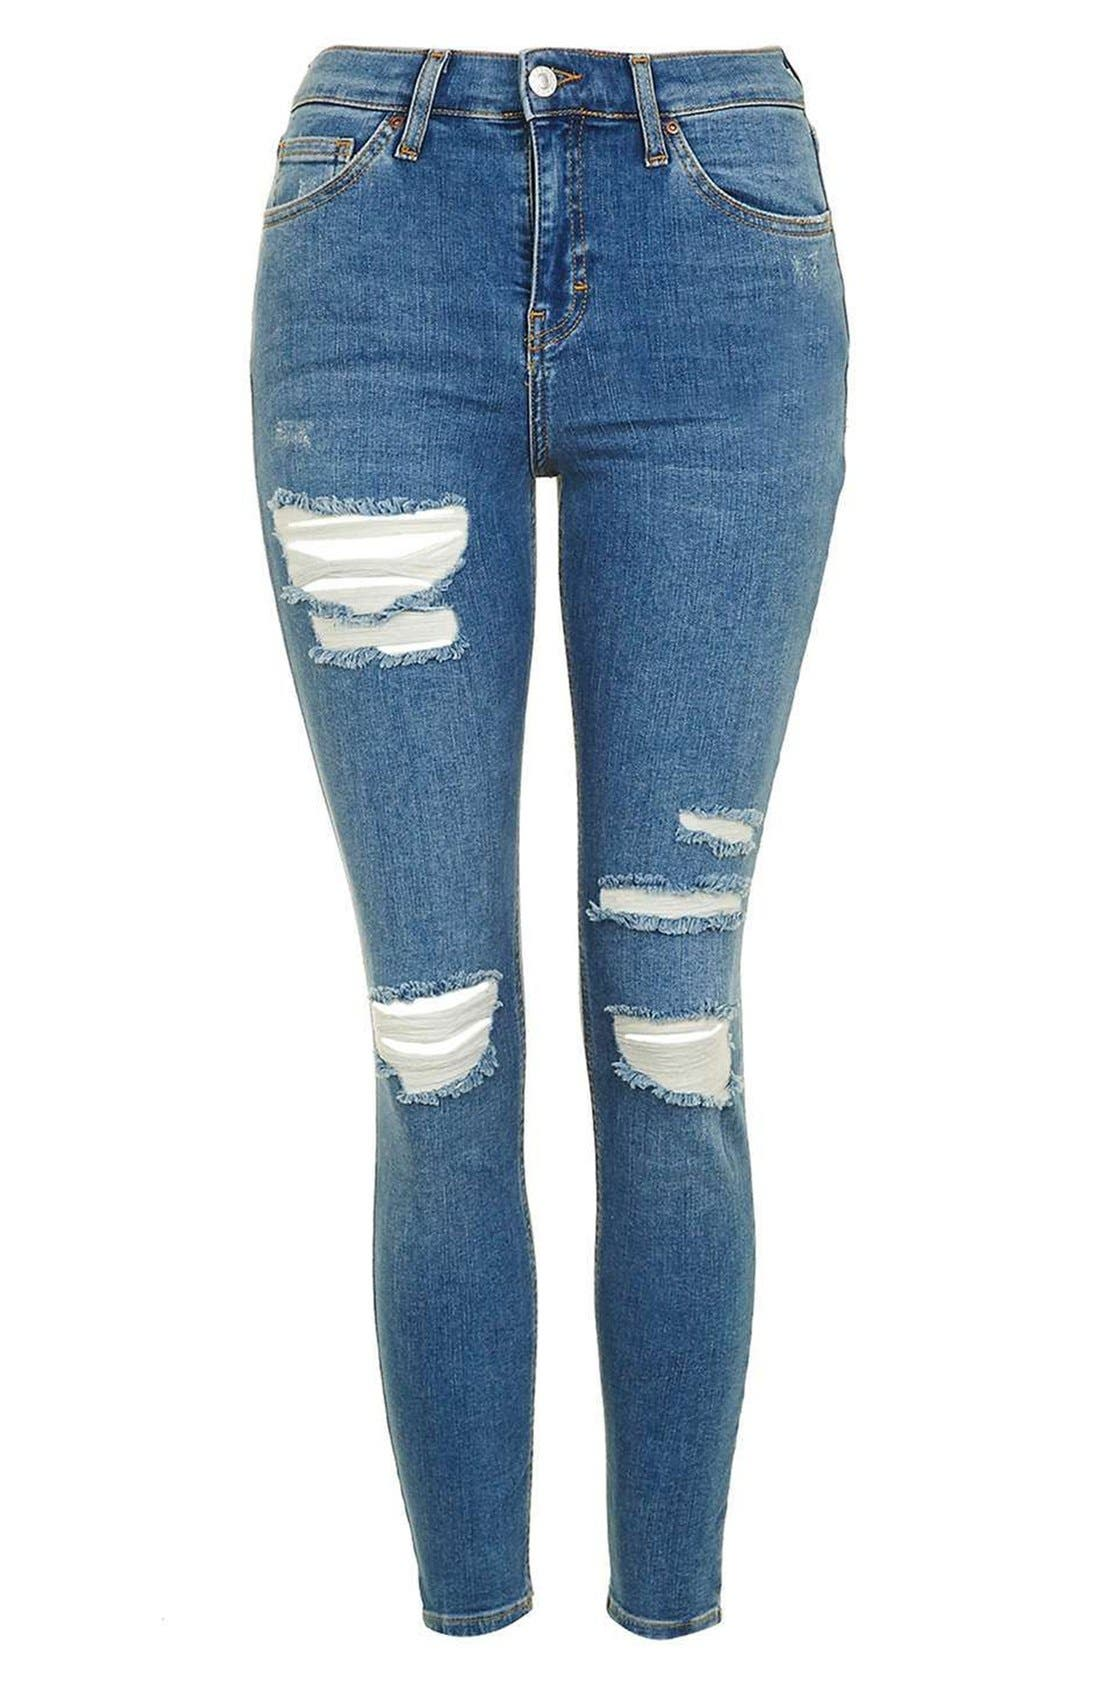 Alternate Image 4  - Topshop 'Jamie' Ripped High Rise Ankle Skinny Jeans (Petite)